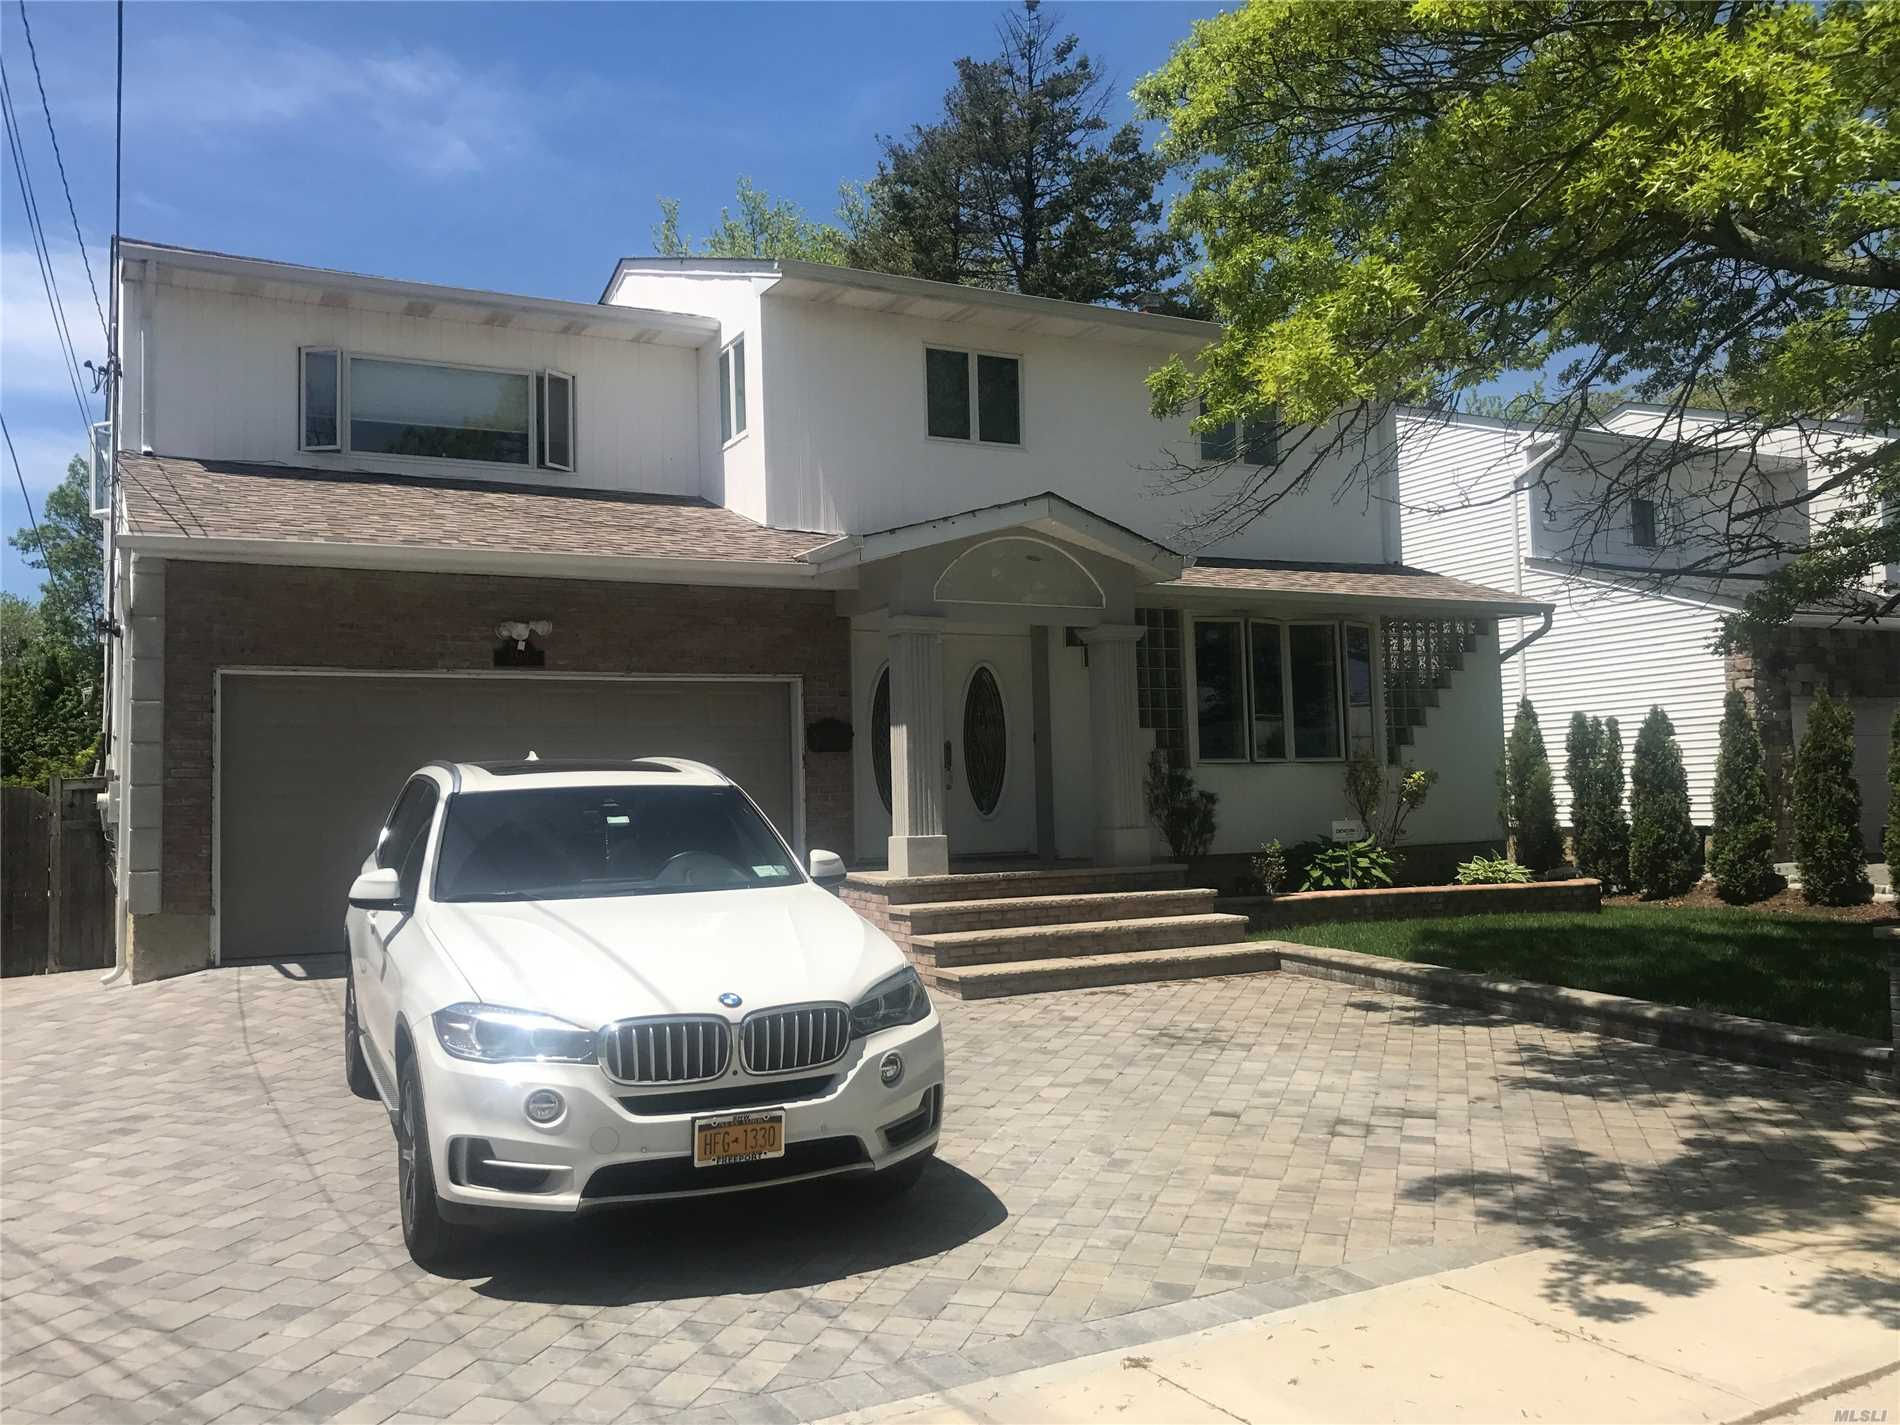 Spacious 4 Br. 2 1/2 Bath Colonial In Baldwin Harbor Granite Eik W Brand New Gourmet Thermador Appliances. Hardwood Floors, New Boiler And Hw Heater. Entertainer's Delight W Sw Ig Pool. Paver Patio And Deck. Master Suite, Igs, Cac. New Roof, No Flood Ins Required!!